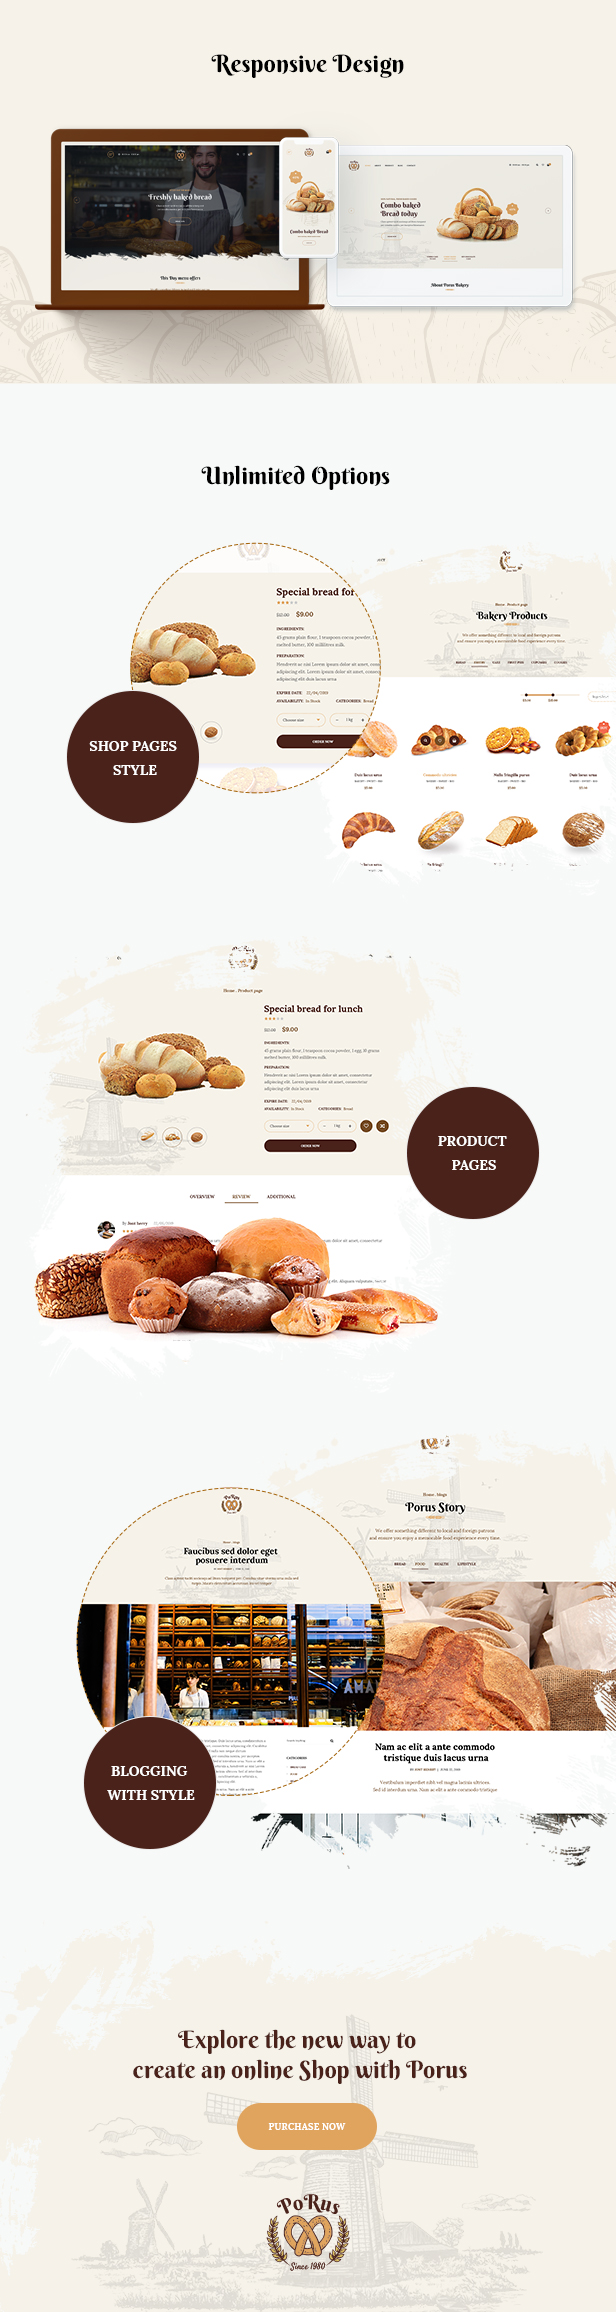 Porus - Bakery Store WordPress Theme - 10